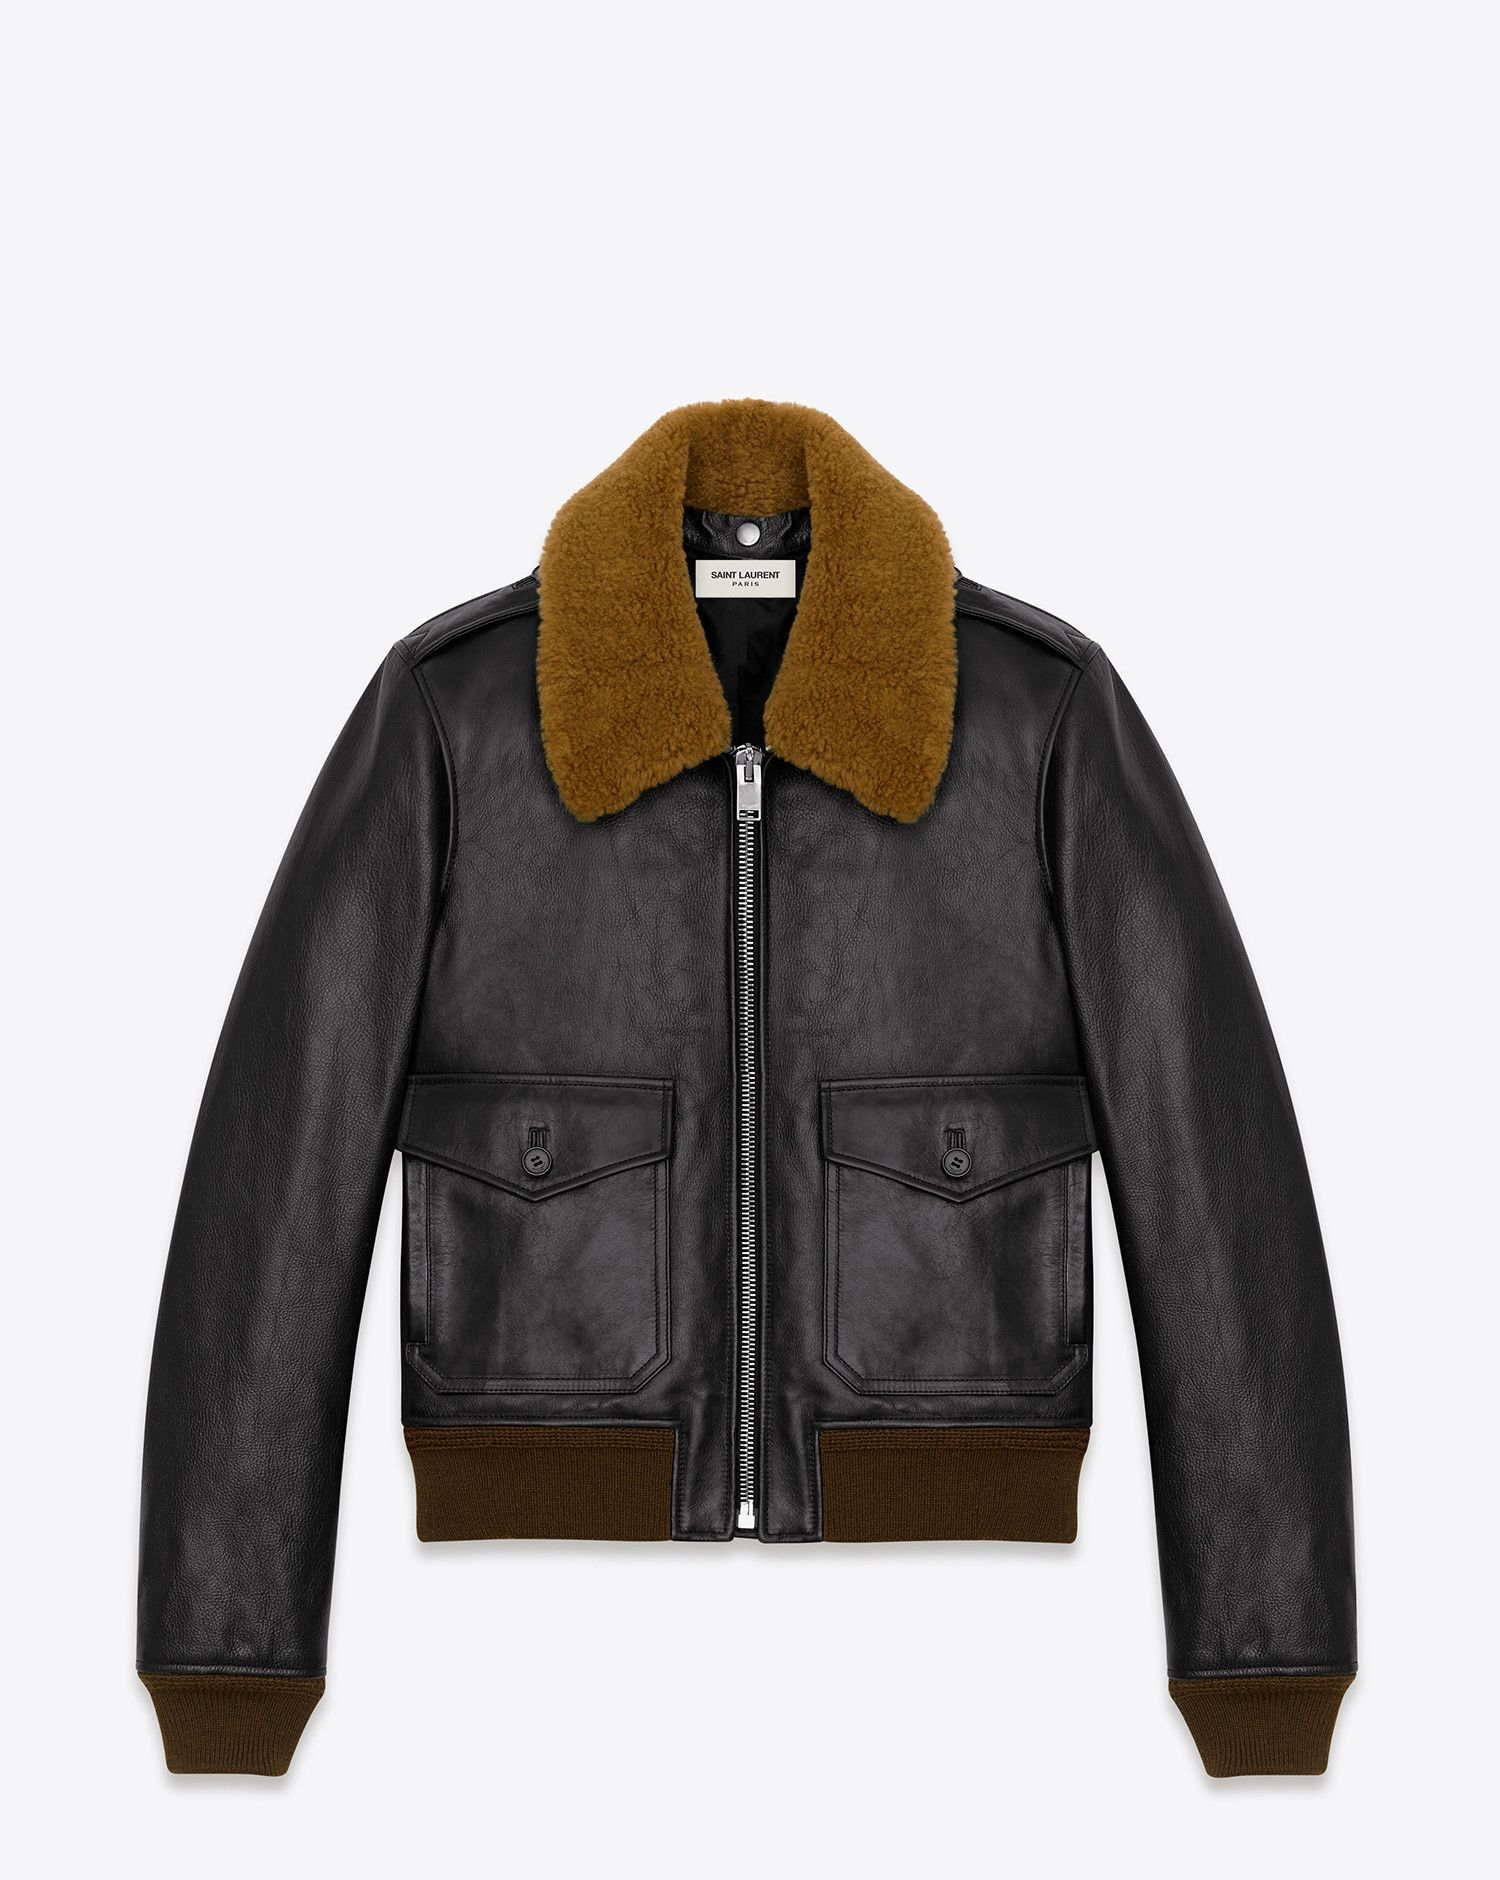 59ddf5530f047 Saint Laurent Classic Flight Jacket In Black Leather And Brown Shearling